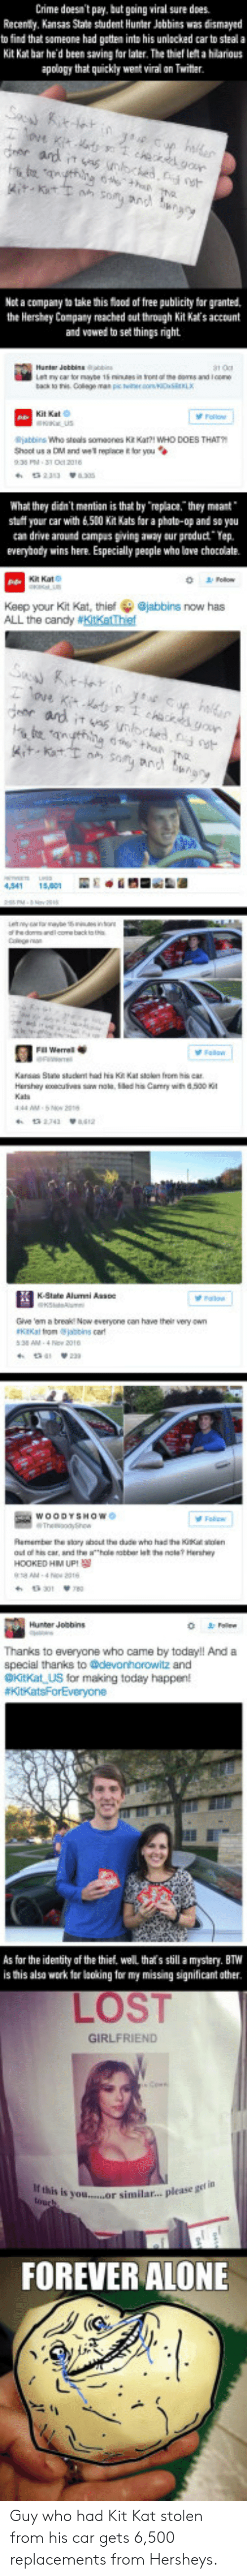 A Dm: Crime doesn't pay, but geing viral sure does  Recenty. Kansas State student Hunter Jobbins was dismayed  to find that someone had gatten into his unlecked car to steal a  Kit Kat bar he'd been saving for later, The thief let a hilarious  apology that quickly went viral on Twitter  Net a company to take this food of free publicity for granted  the Hershey Company reached out through Kit Kats account  and wawed to set things right  jabbirs Who steals somaones Kt Kat?! WHO DOES THATY  Shoot us a DM and wel replace fo you  What they didn't mentian is that by replac.they mean  stuff your car with 6.500 Kit Kats far a photo-op and so you  an drive around campus giving away our product Yep.  everybody wins here. Especially pesple who lave chocolate.  Keep your Kit Kat, thiefjabbins now has  ALL the candy #KitKatthet  deor ad it  be 'an  l Werral  Karsas Sa  Harshiay oocutes siw nok, ed ha Carnry with 8.500 K  everyone can  have their  WOODYSHOWO  u ofl his car, and the hole nabber let the note Hershry  HOOKED HM UP 9  Thanks to everyone who came by today!l And a  special thanks to @devonhorowitz and  @Kitkat US for making today happen!  As for the identity of the thief, well that's still a mystery. BTW  is this also work fer laoking for my missing significant ather  LOST  FOREVER ALONE Guy who had Kit Kat stolen from his car gets 6,500 replacements from Hersheys.